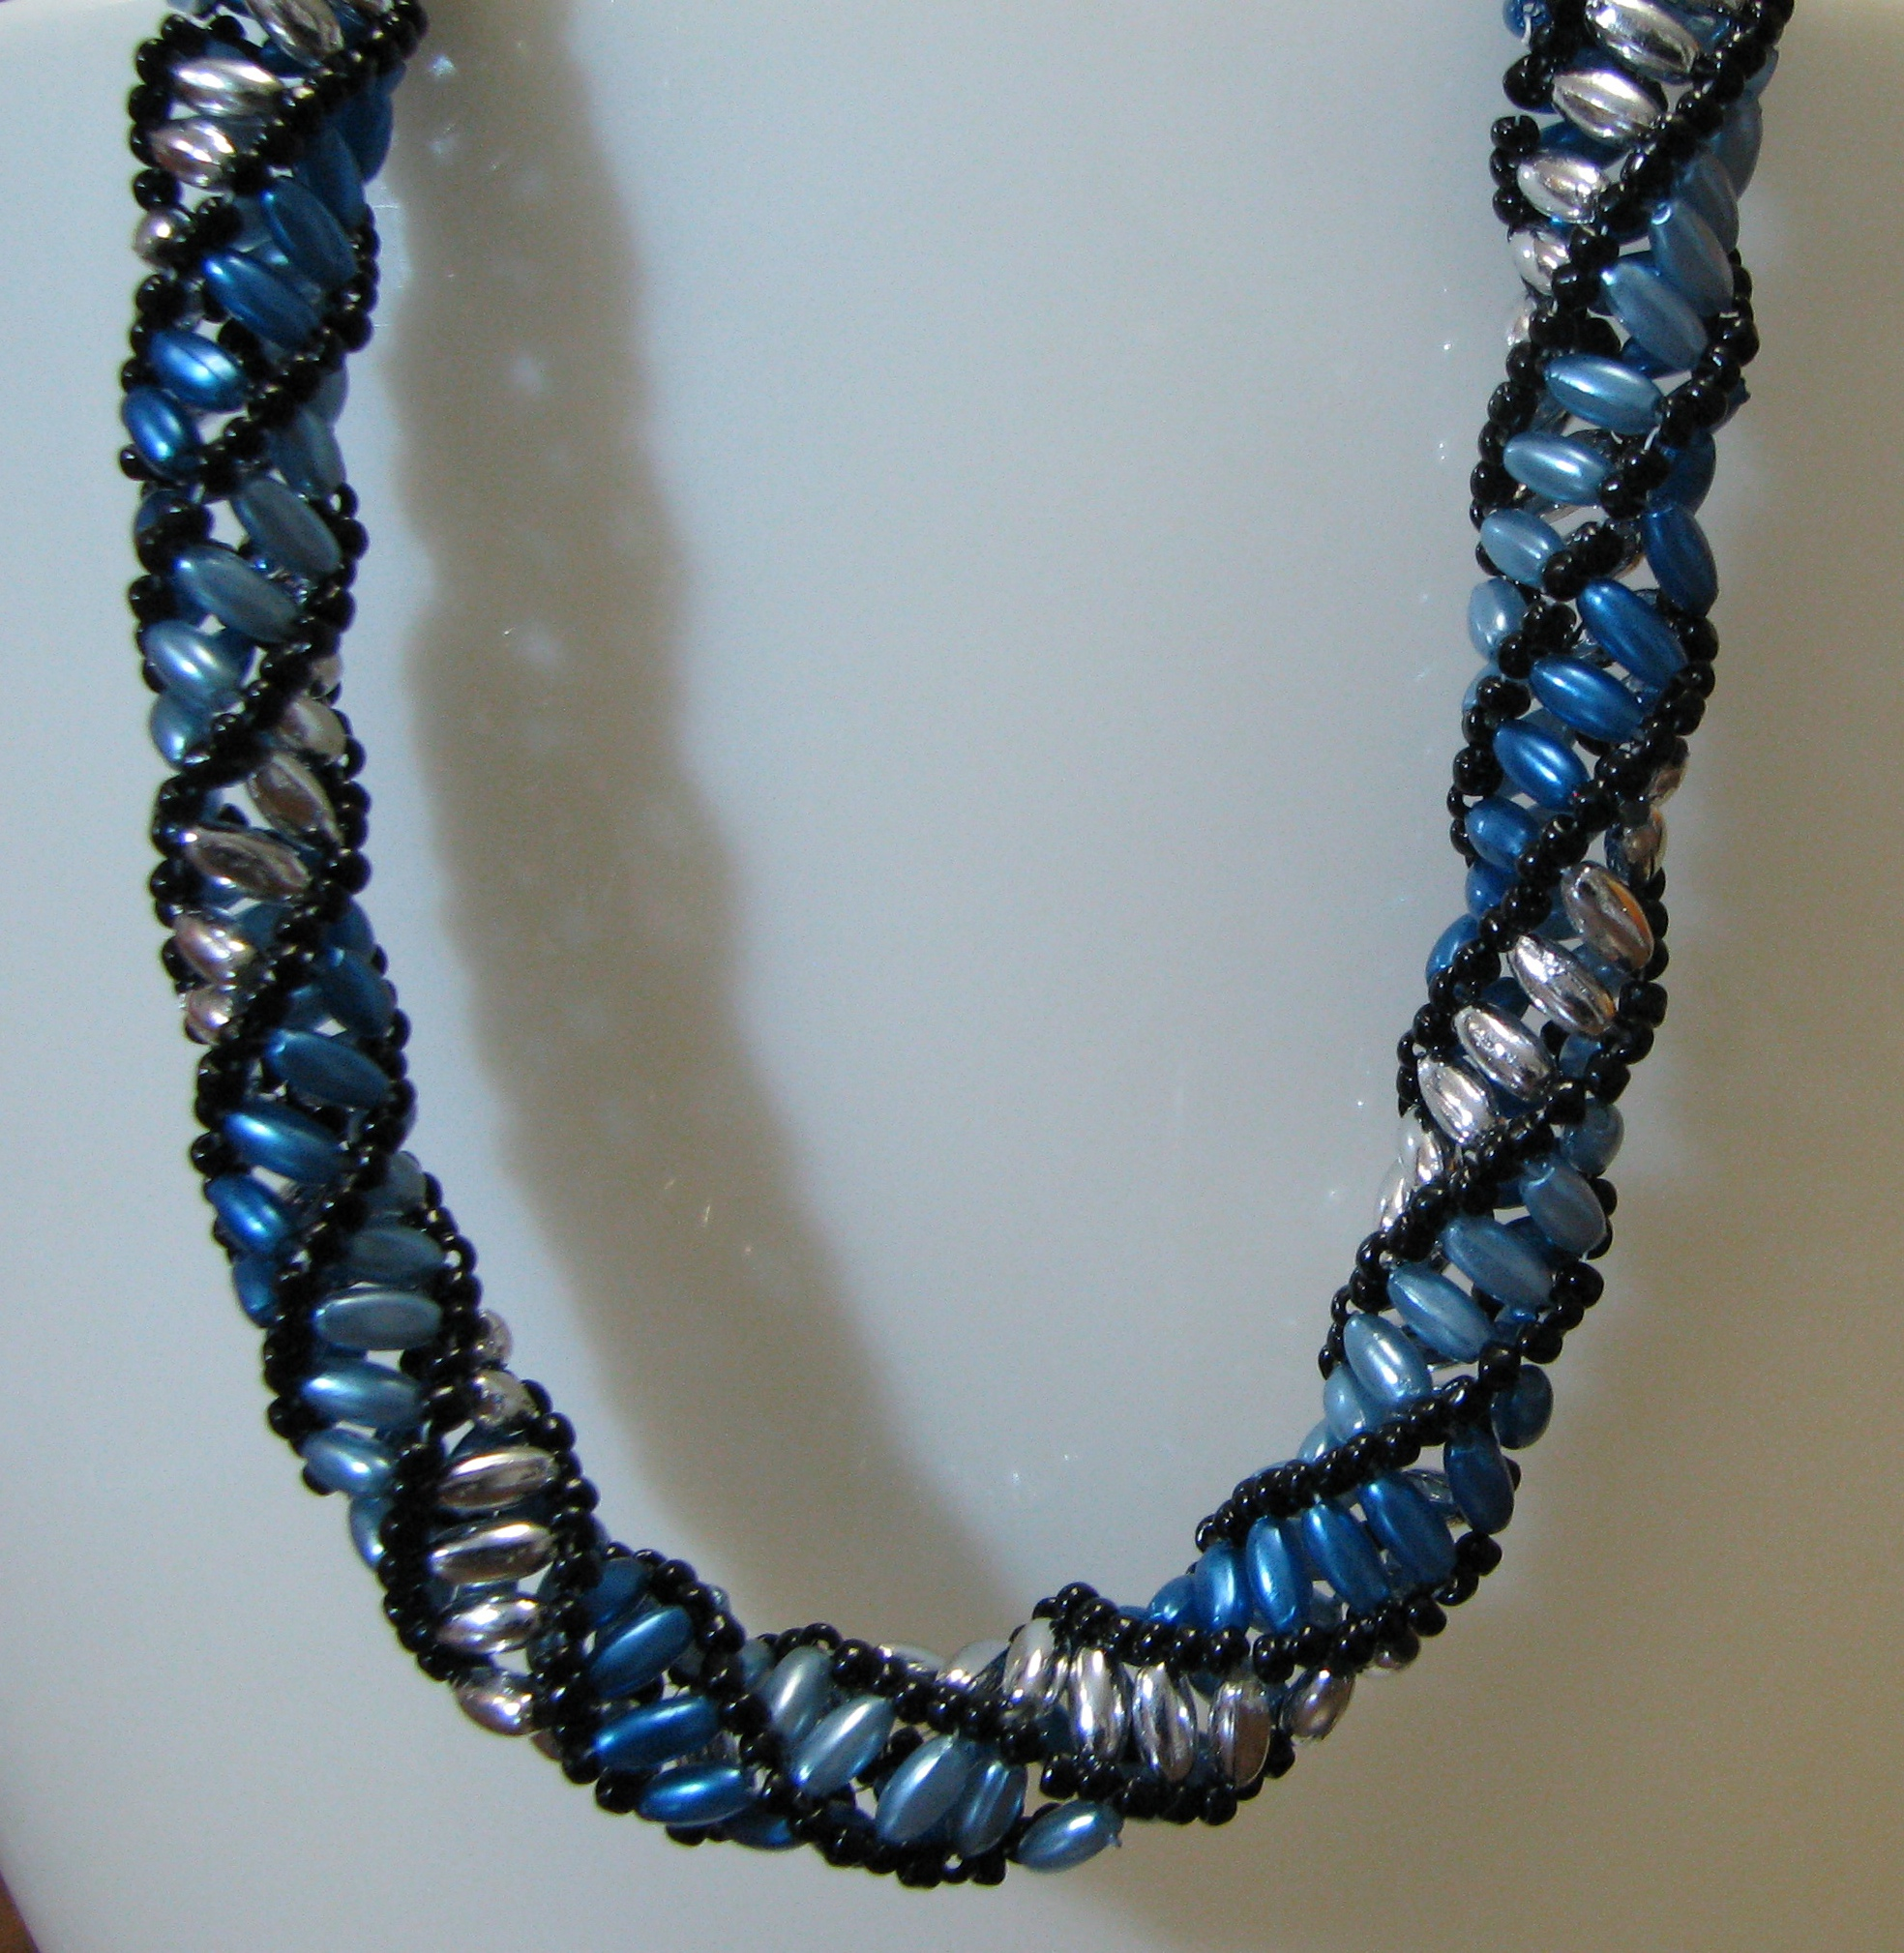 4_necklace_15_img_6477